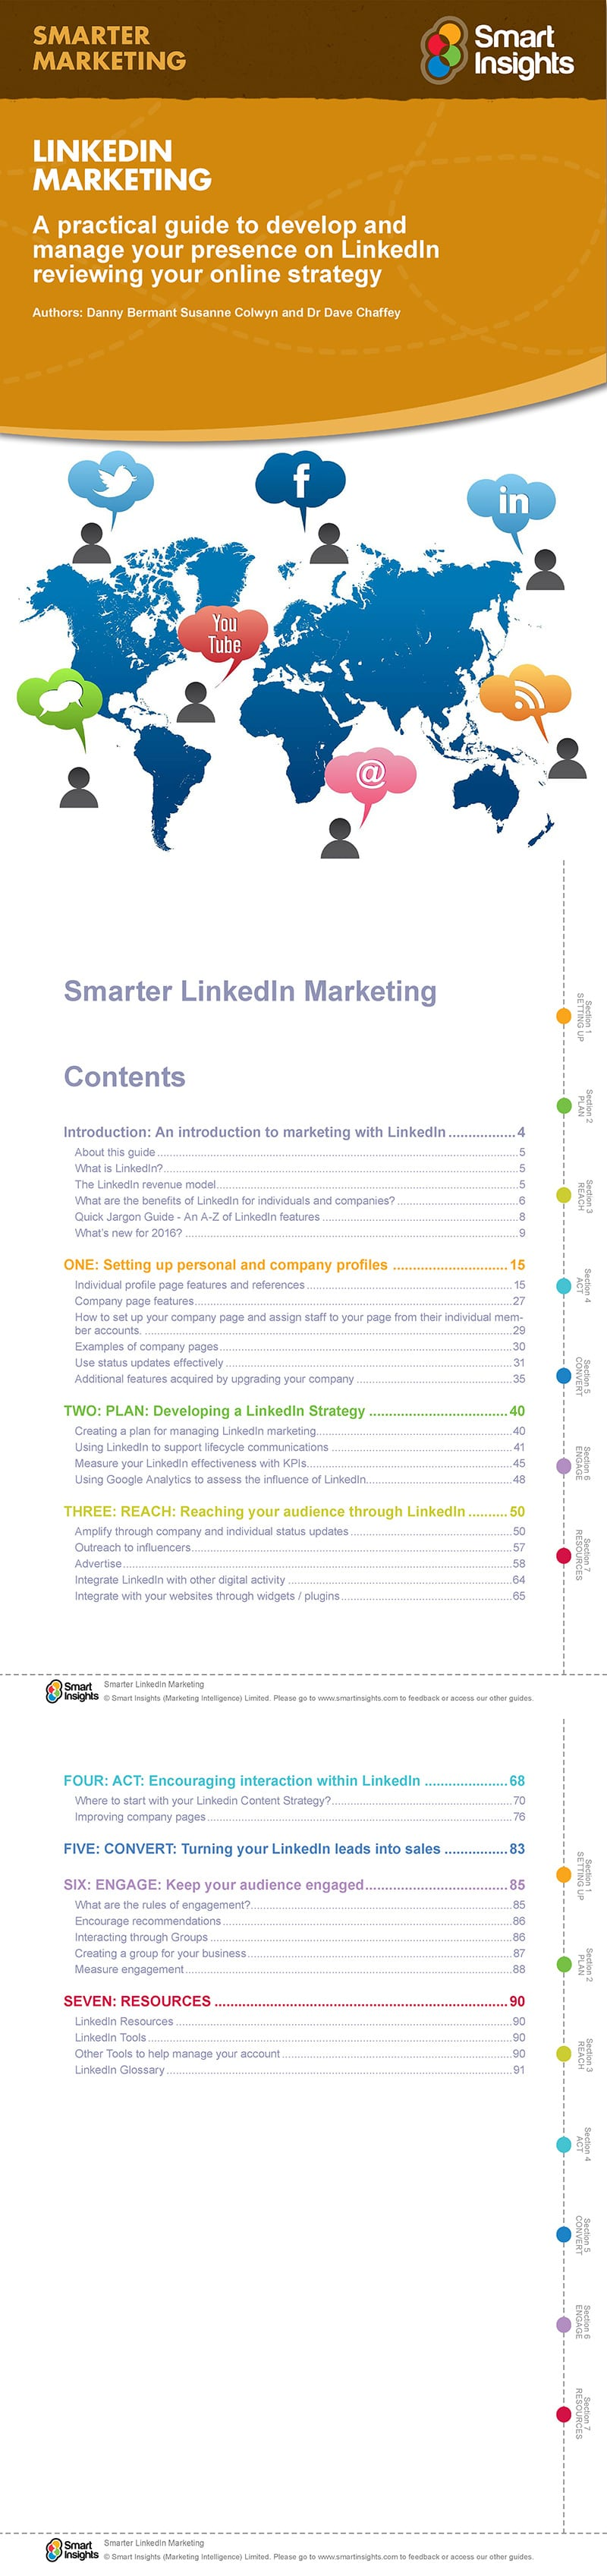 Smarter LinkedIn marketing guide